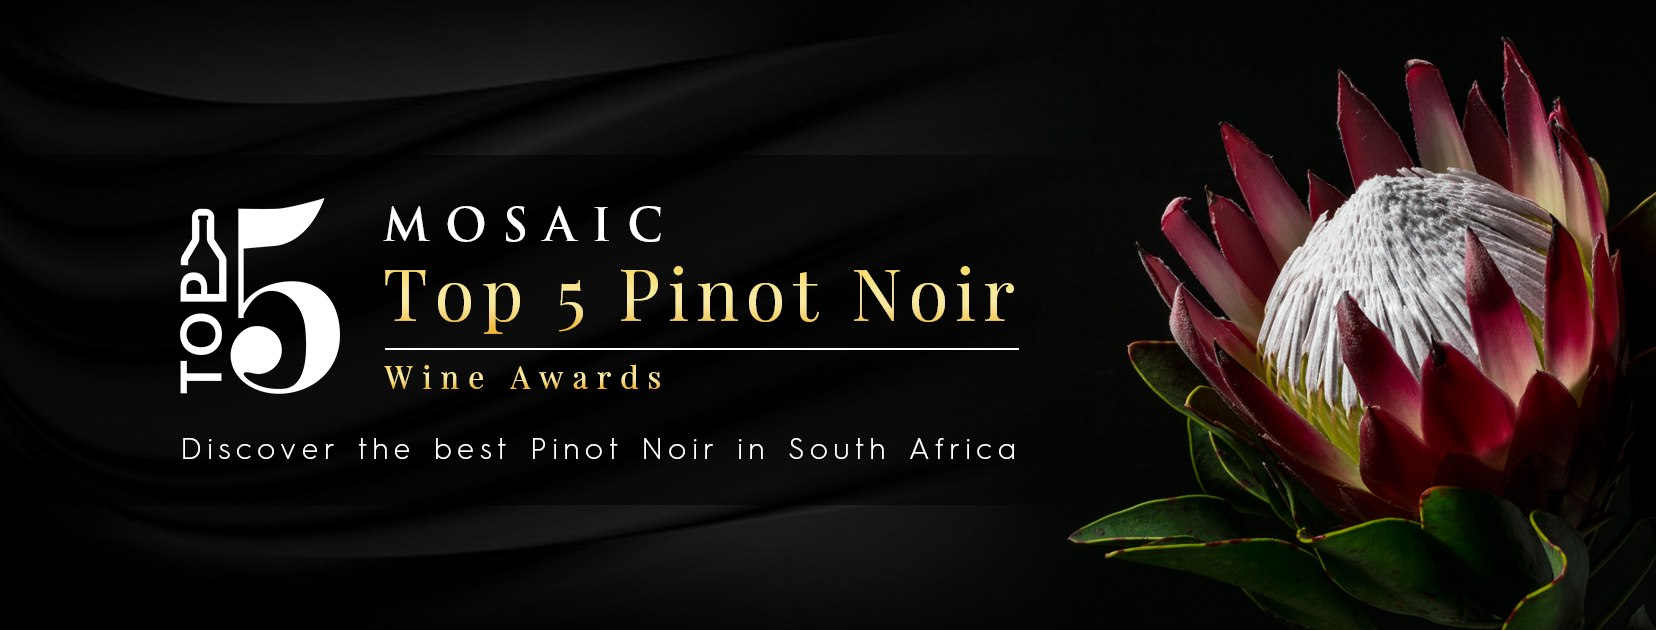 Top 5 Pinot Noirs In South Africa Announced At Inaugural 2020 Mosiac Wine Awards photo